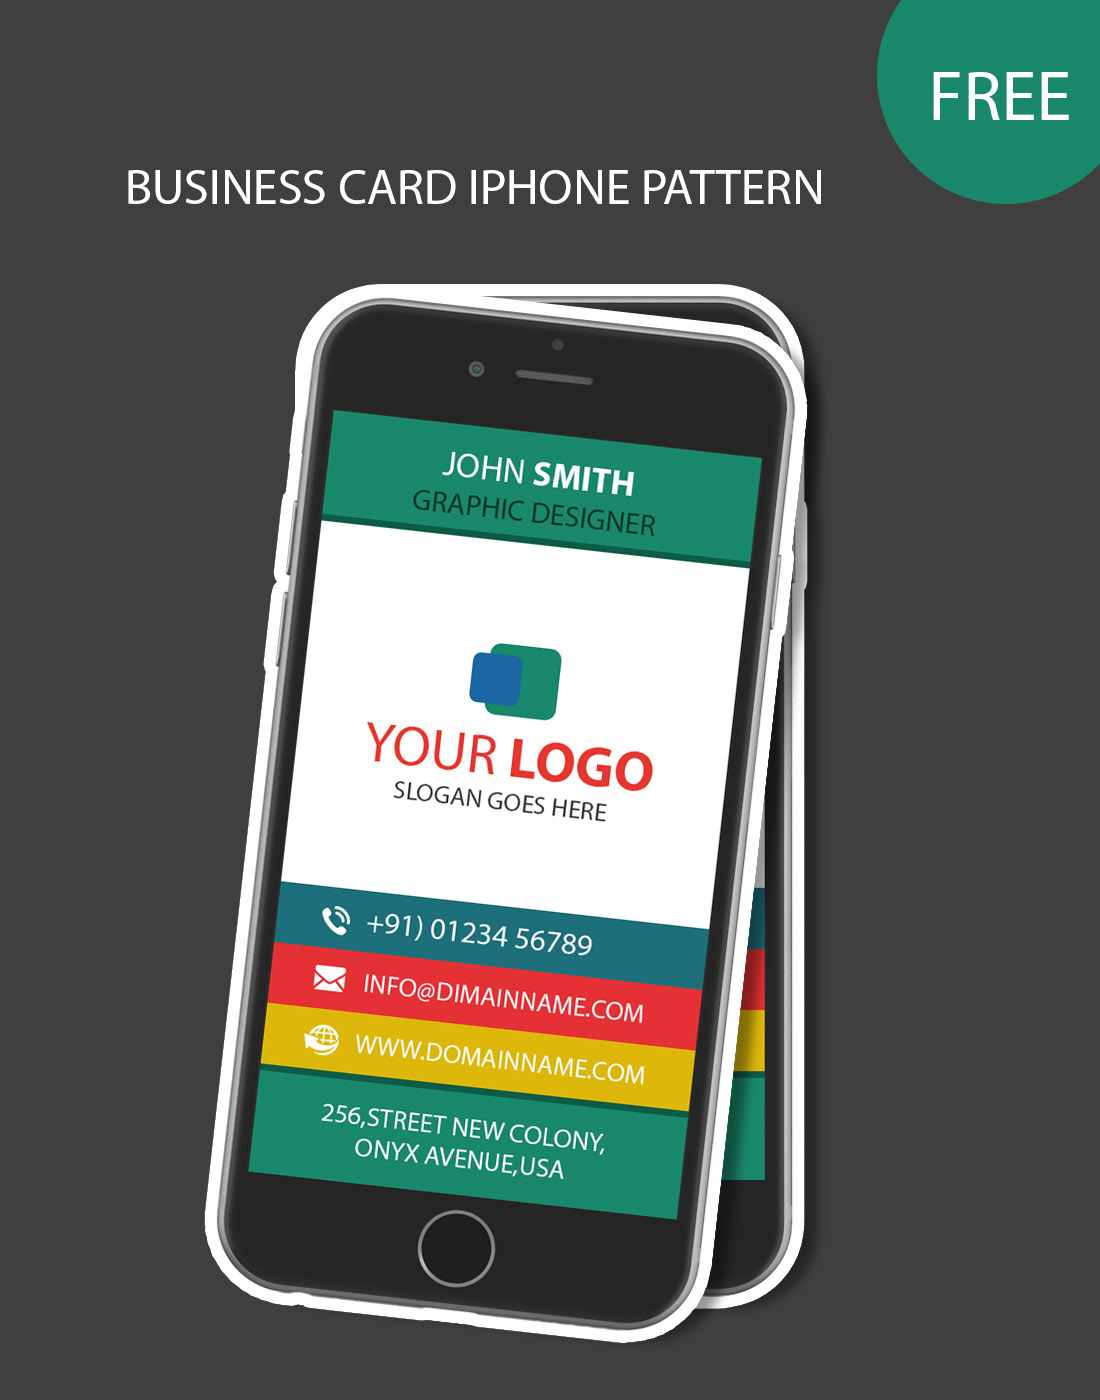 iphone pattern business card